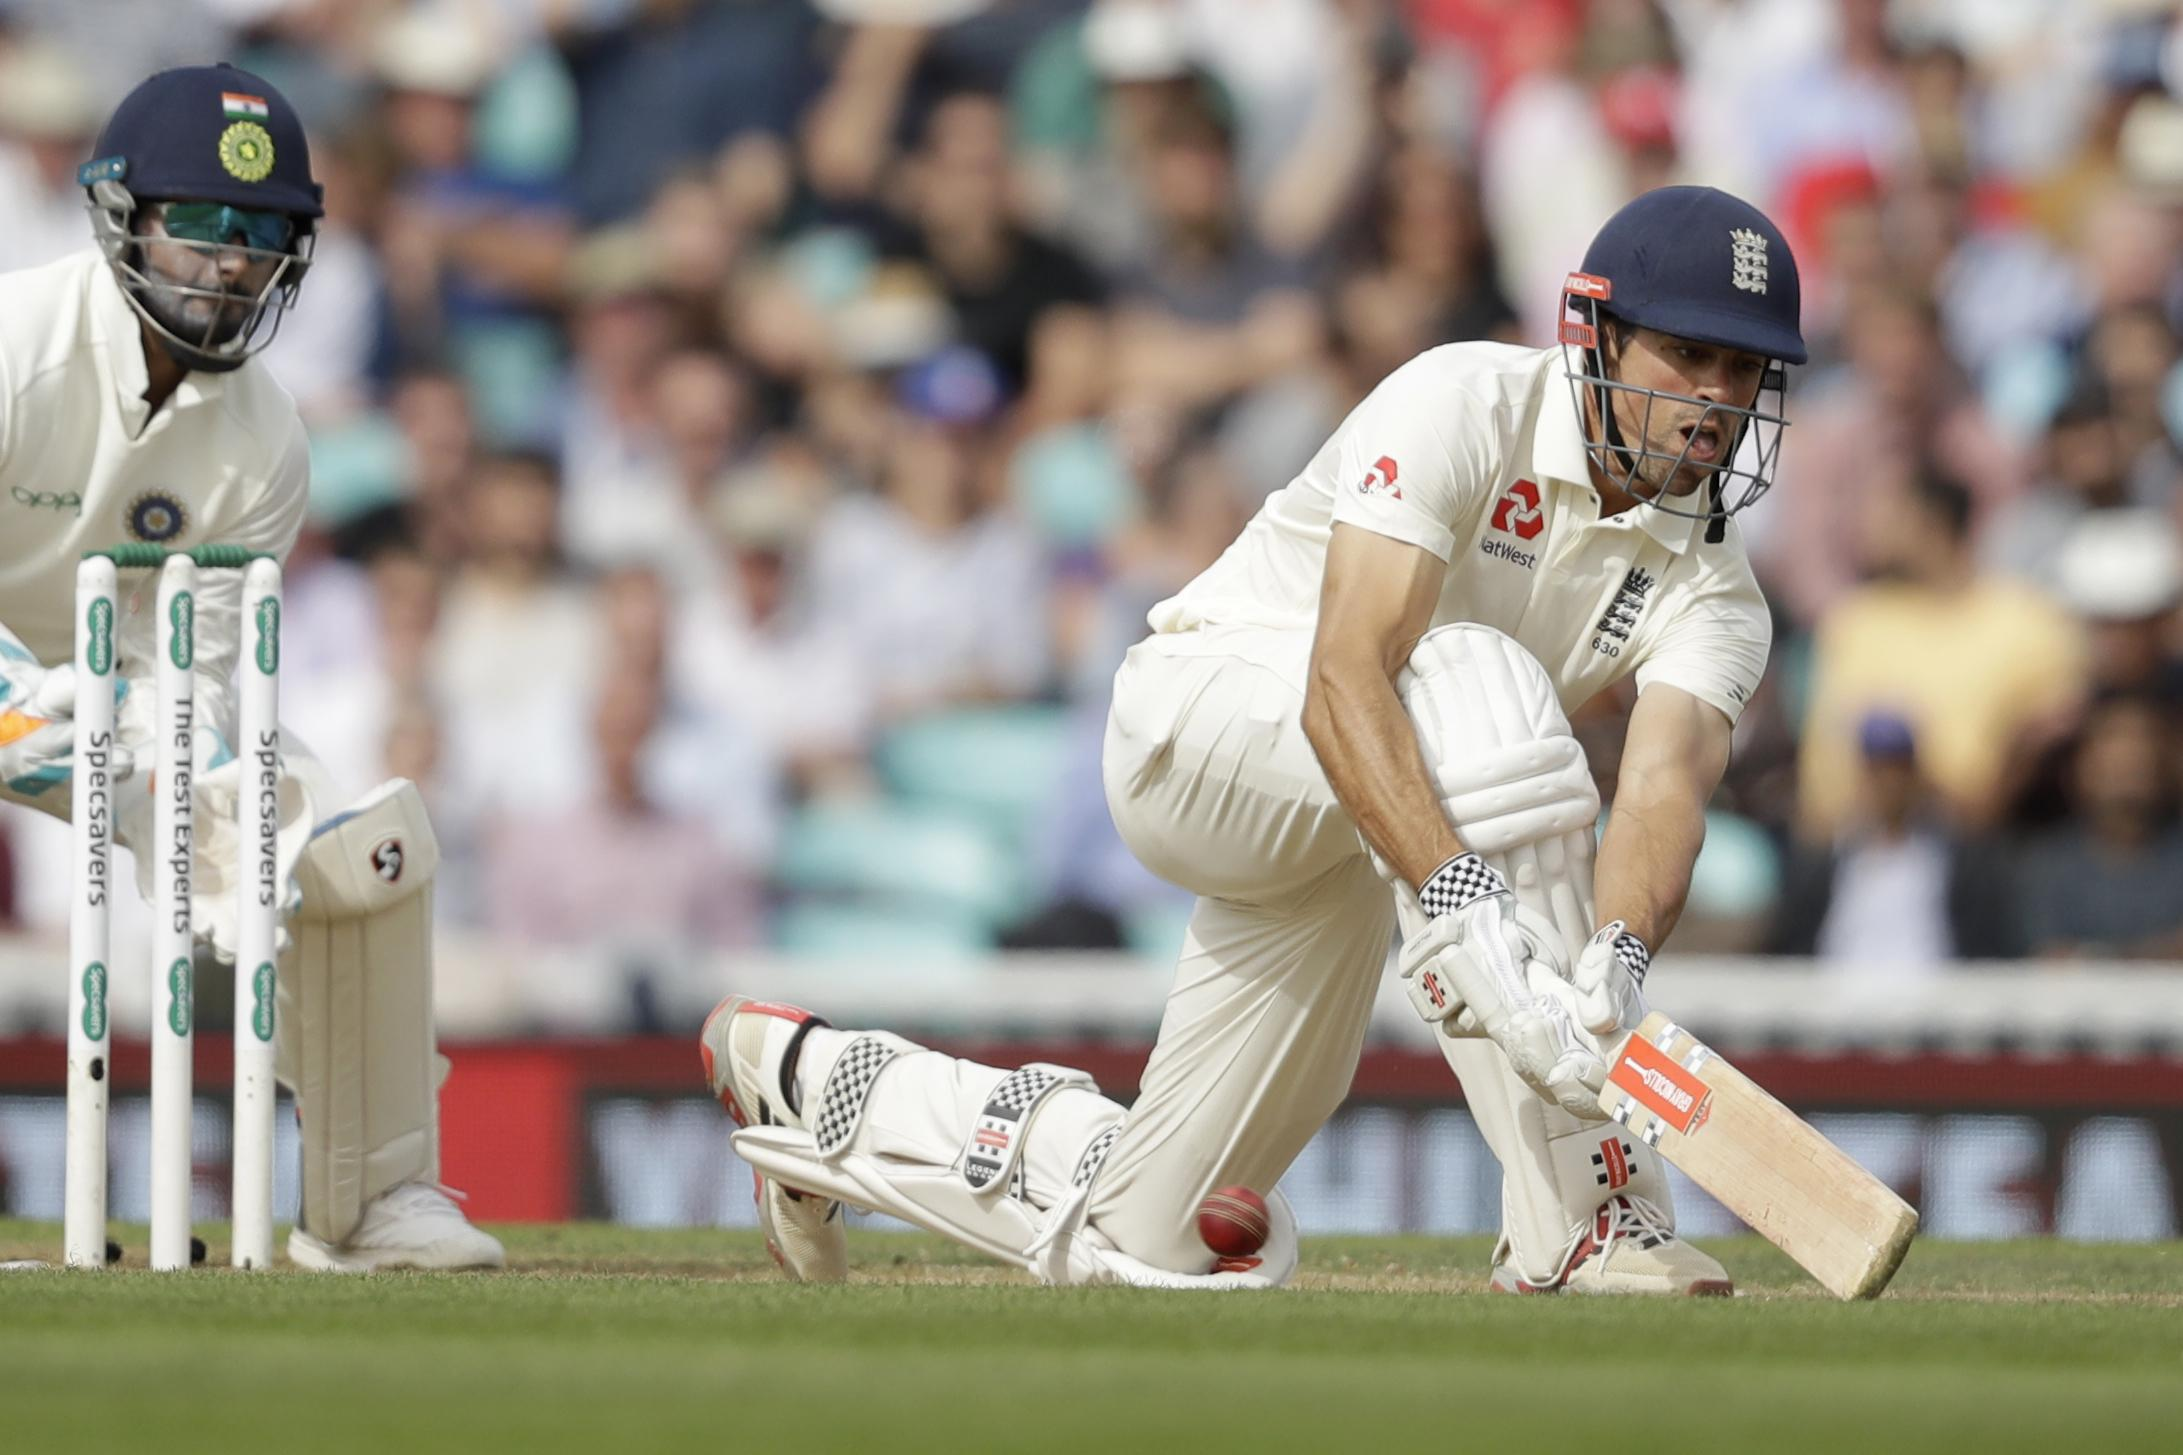 Cook and captain Joe Root both scored centuries to add an extra £40,000 to the total